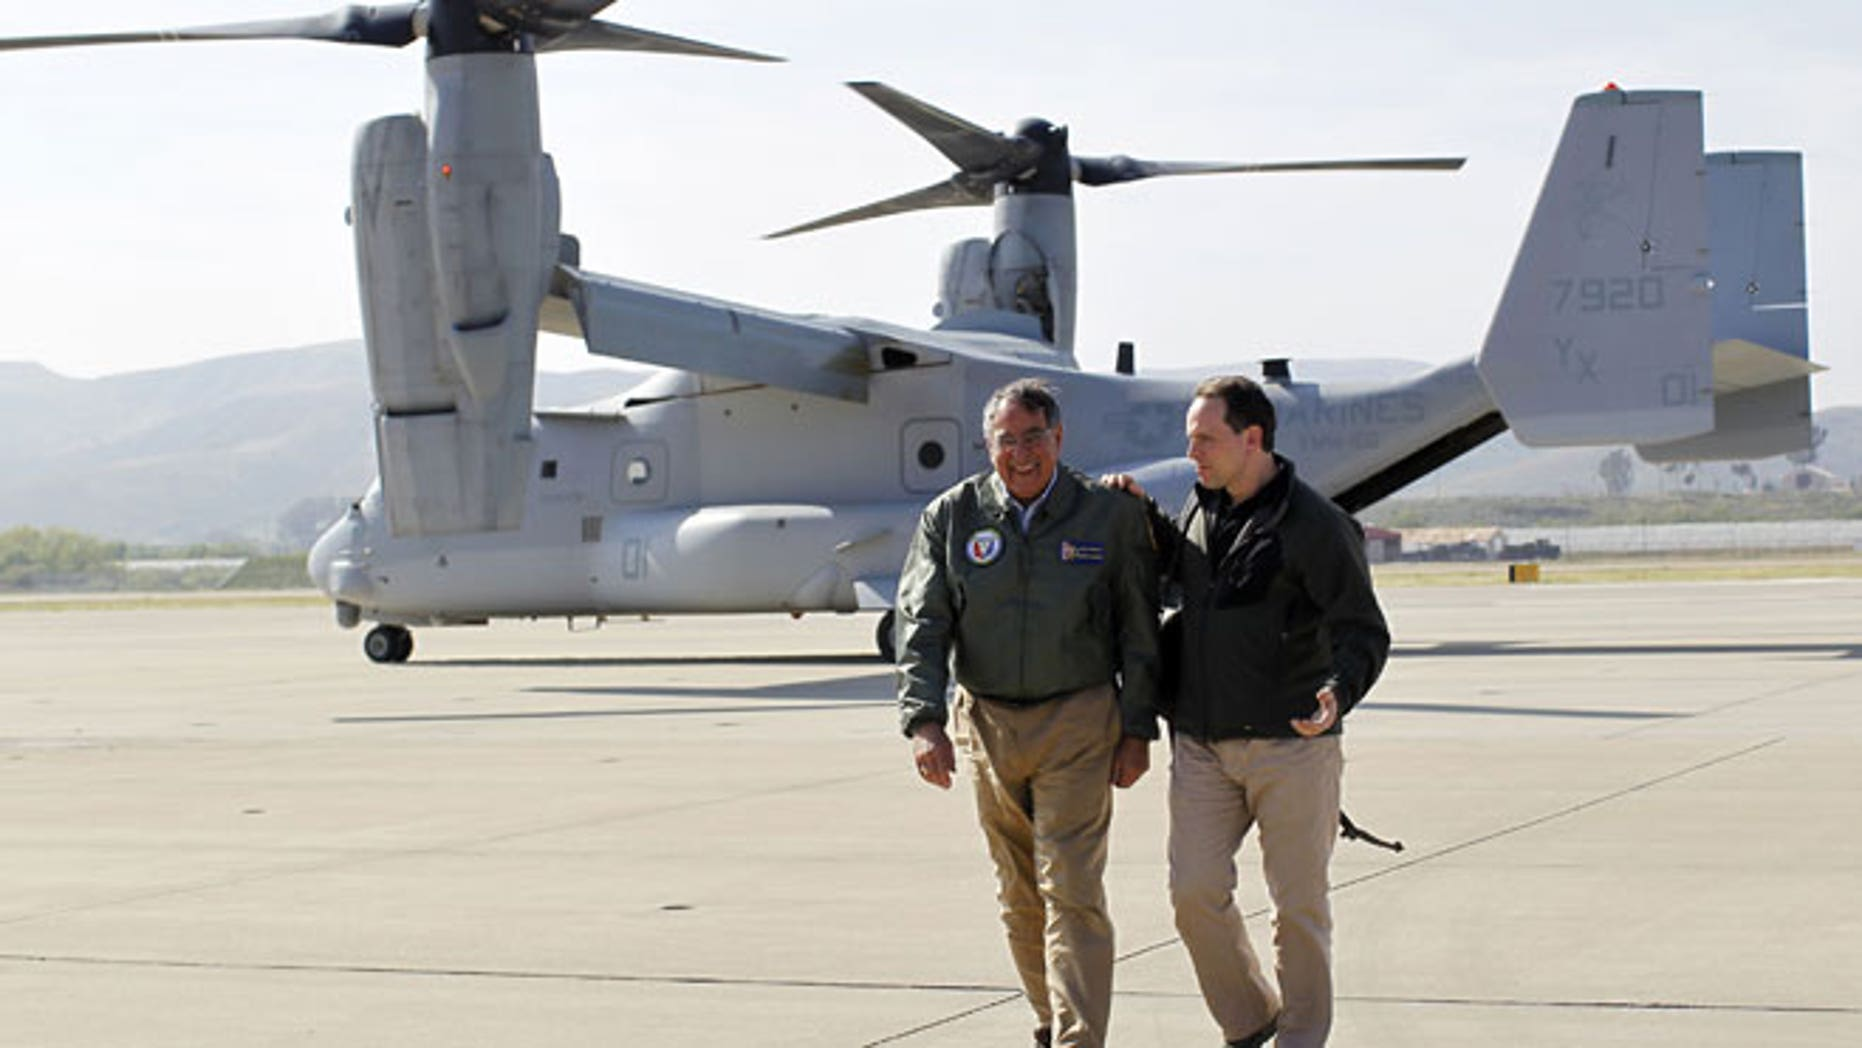 In this March 30, 2012 file photo, U.S. Secretary of Defense Leon Panetta, left, talks with his chief of staff Jeremy Bash after landing in an V-22 Osprey at Camp Pendleton, Calif. Recent crashes involving the U.S. military's latest transport aircraft are fueling  an uproar in Japan that could threaten plans to deploy them to the southern island of Okinawa by the end of the year.